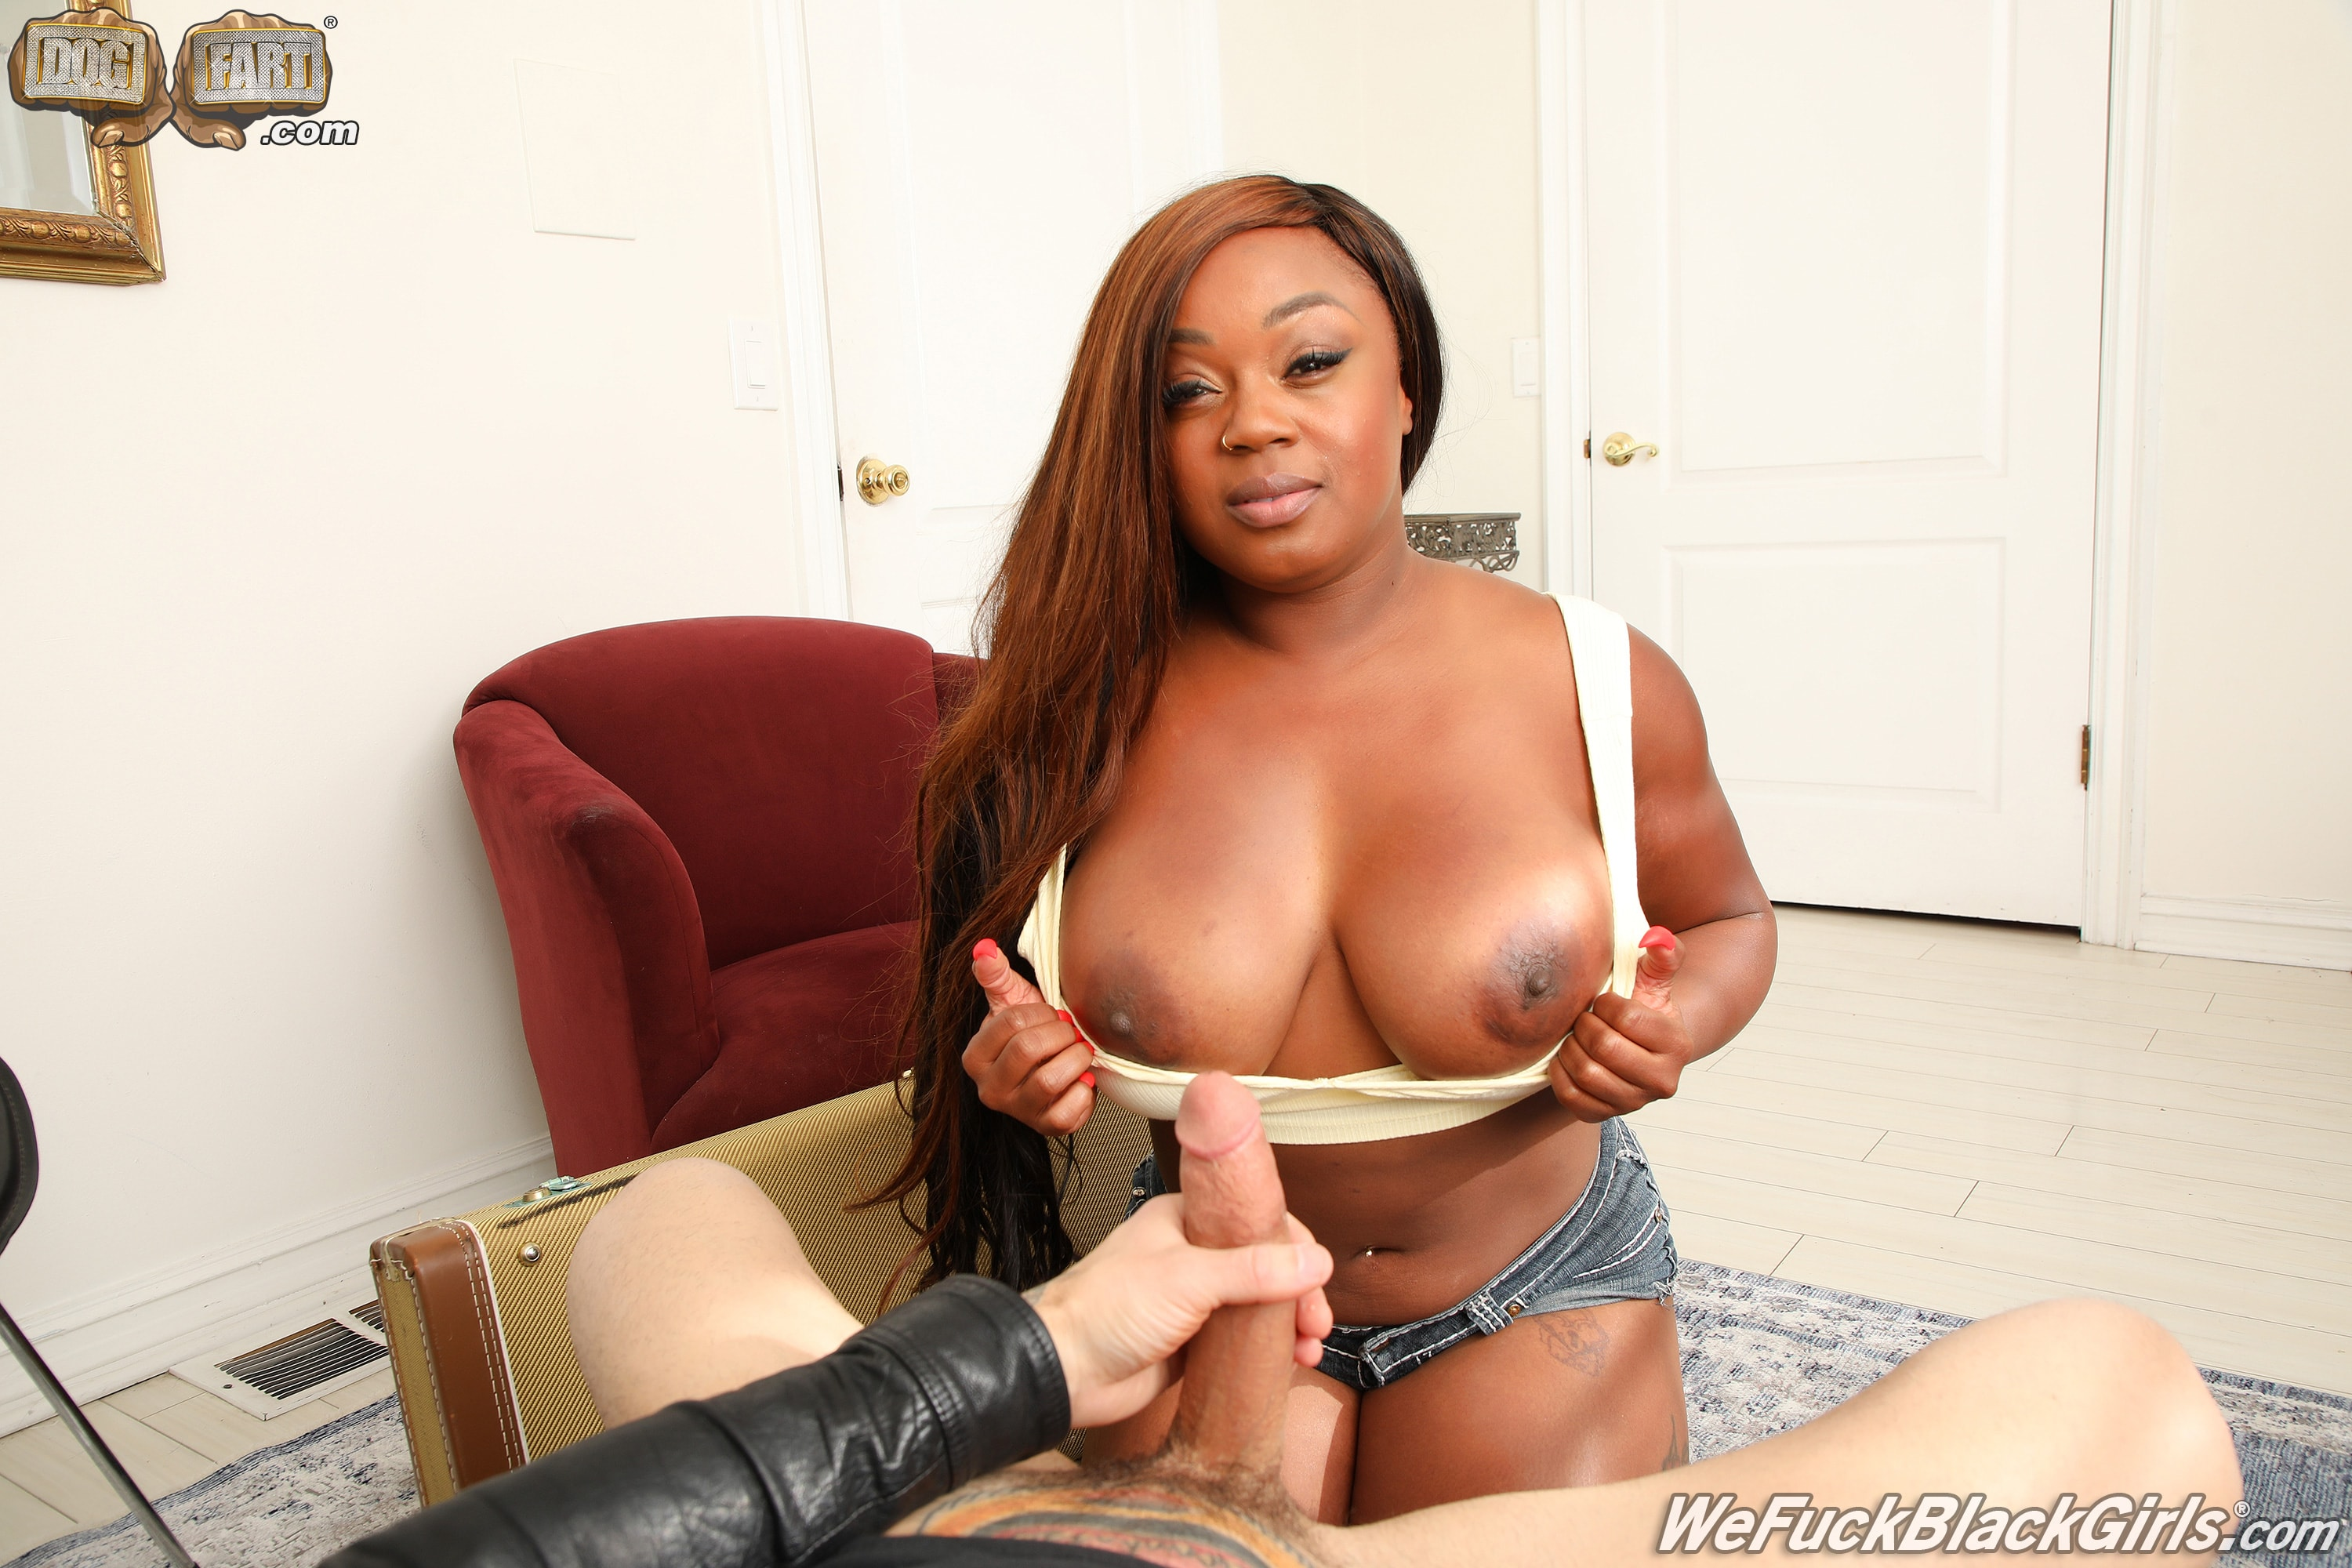 Dogfart '- We Fuck Black Girls - Scene 2' starring Jayden Starr (Photo 4)